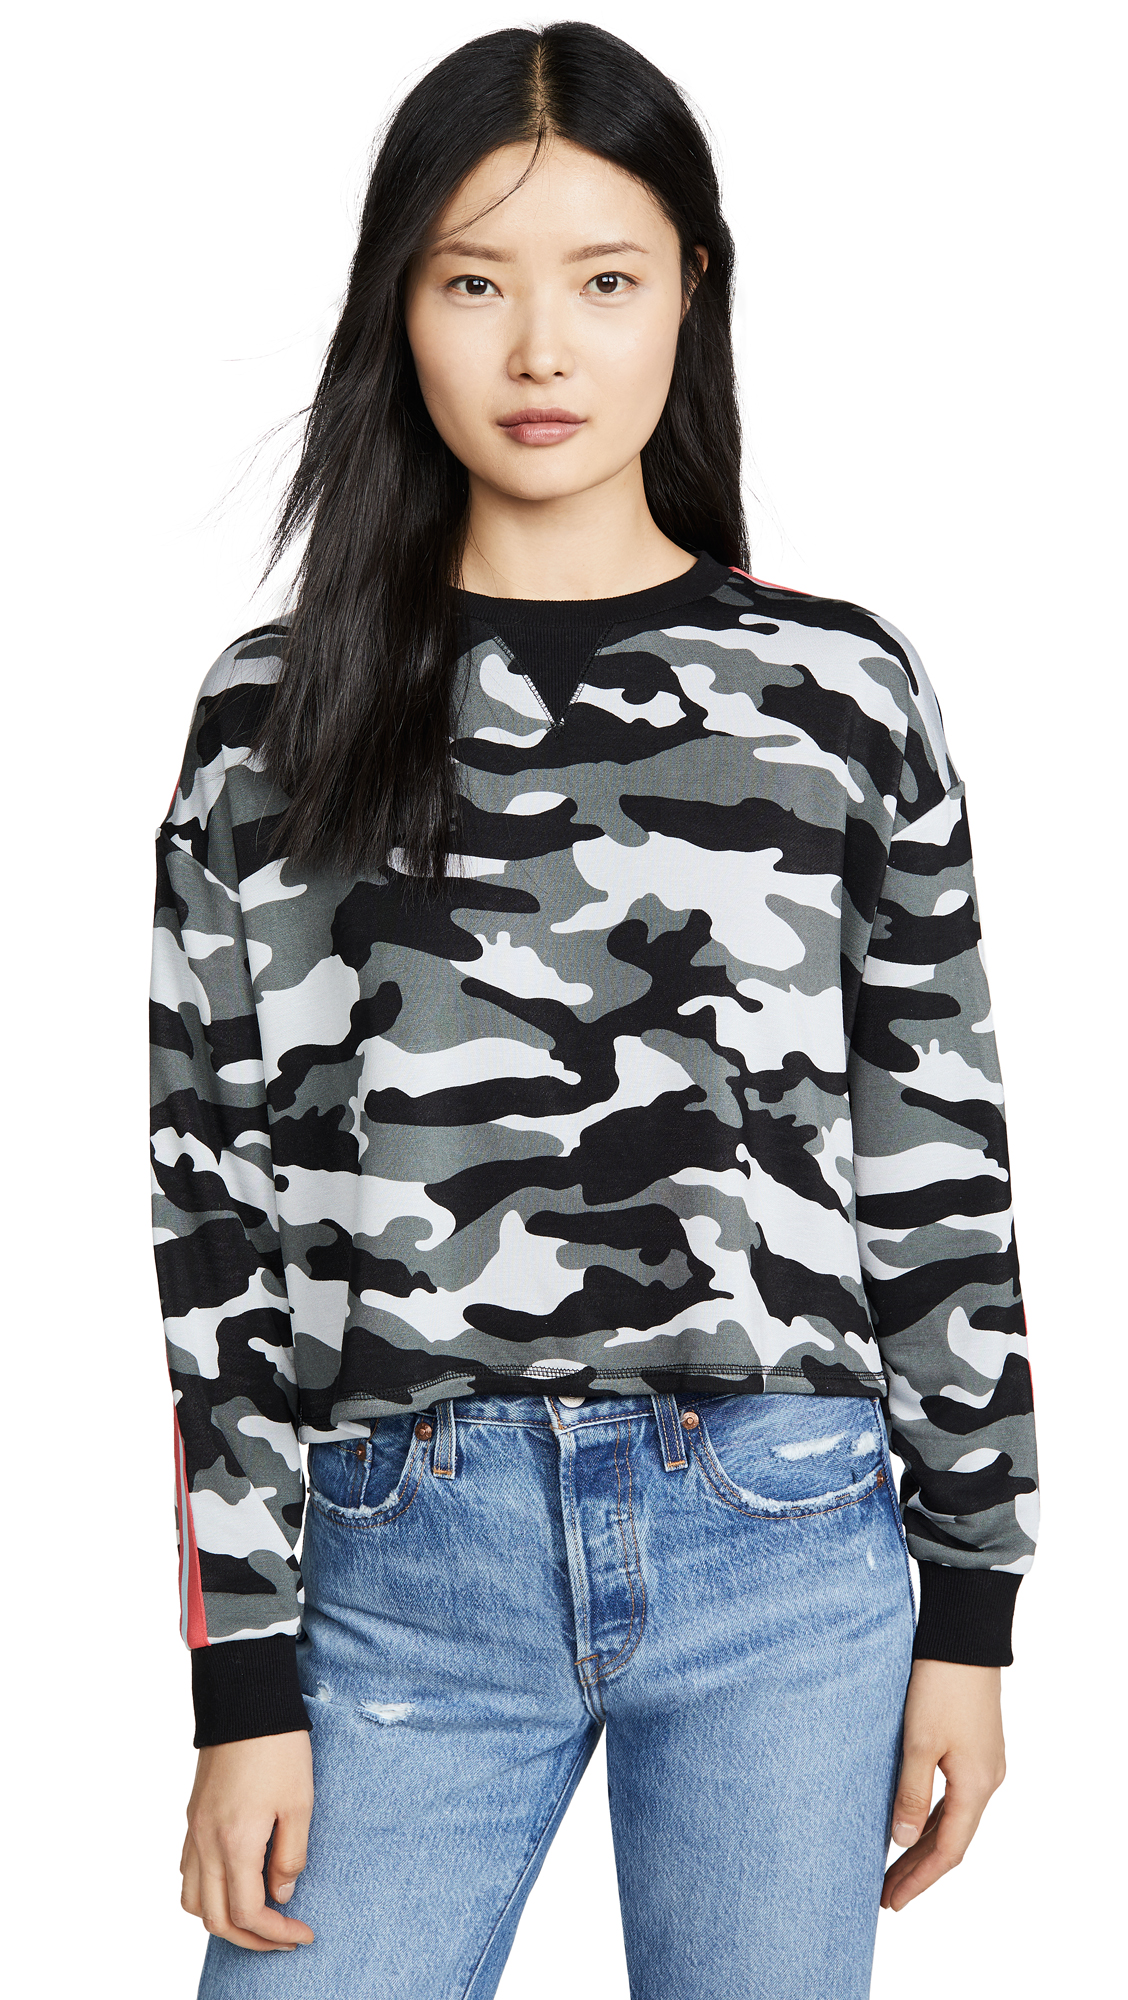 BB Dakota Over the Radar Sweatshirt – 30% Off Sale